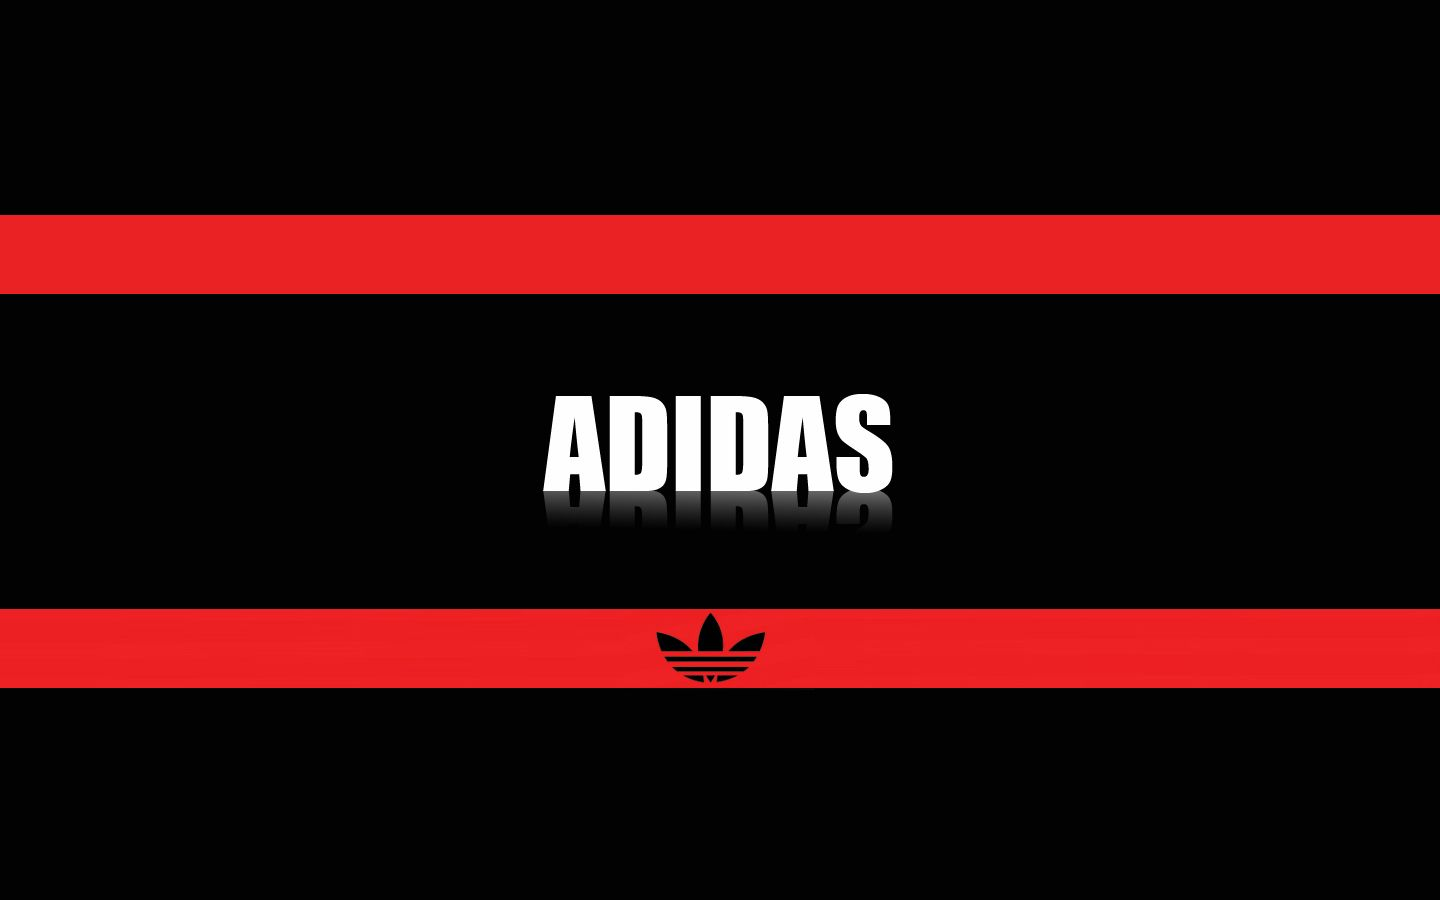 Adidas Originals Logo Wallpapers - Wallpaper Cave